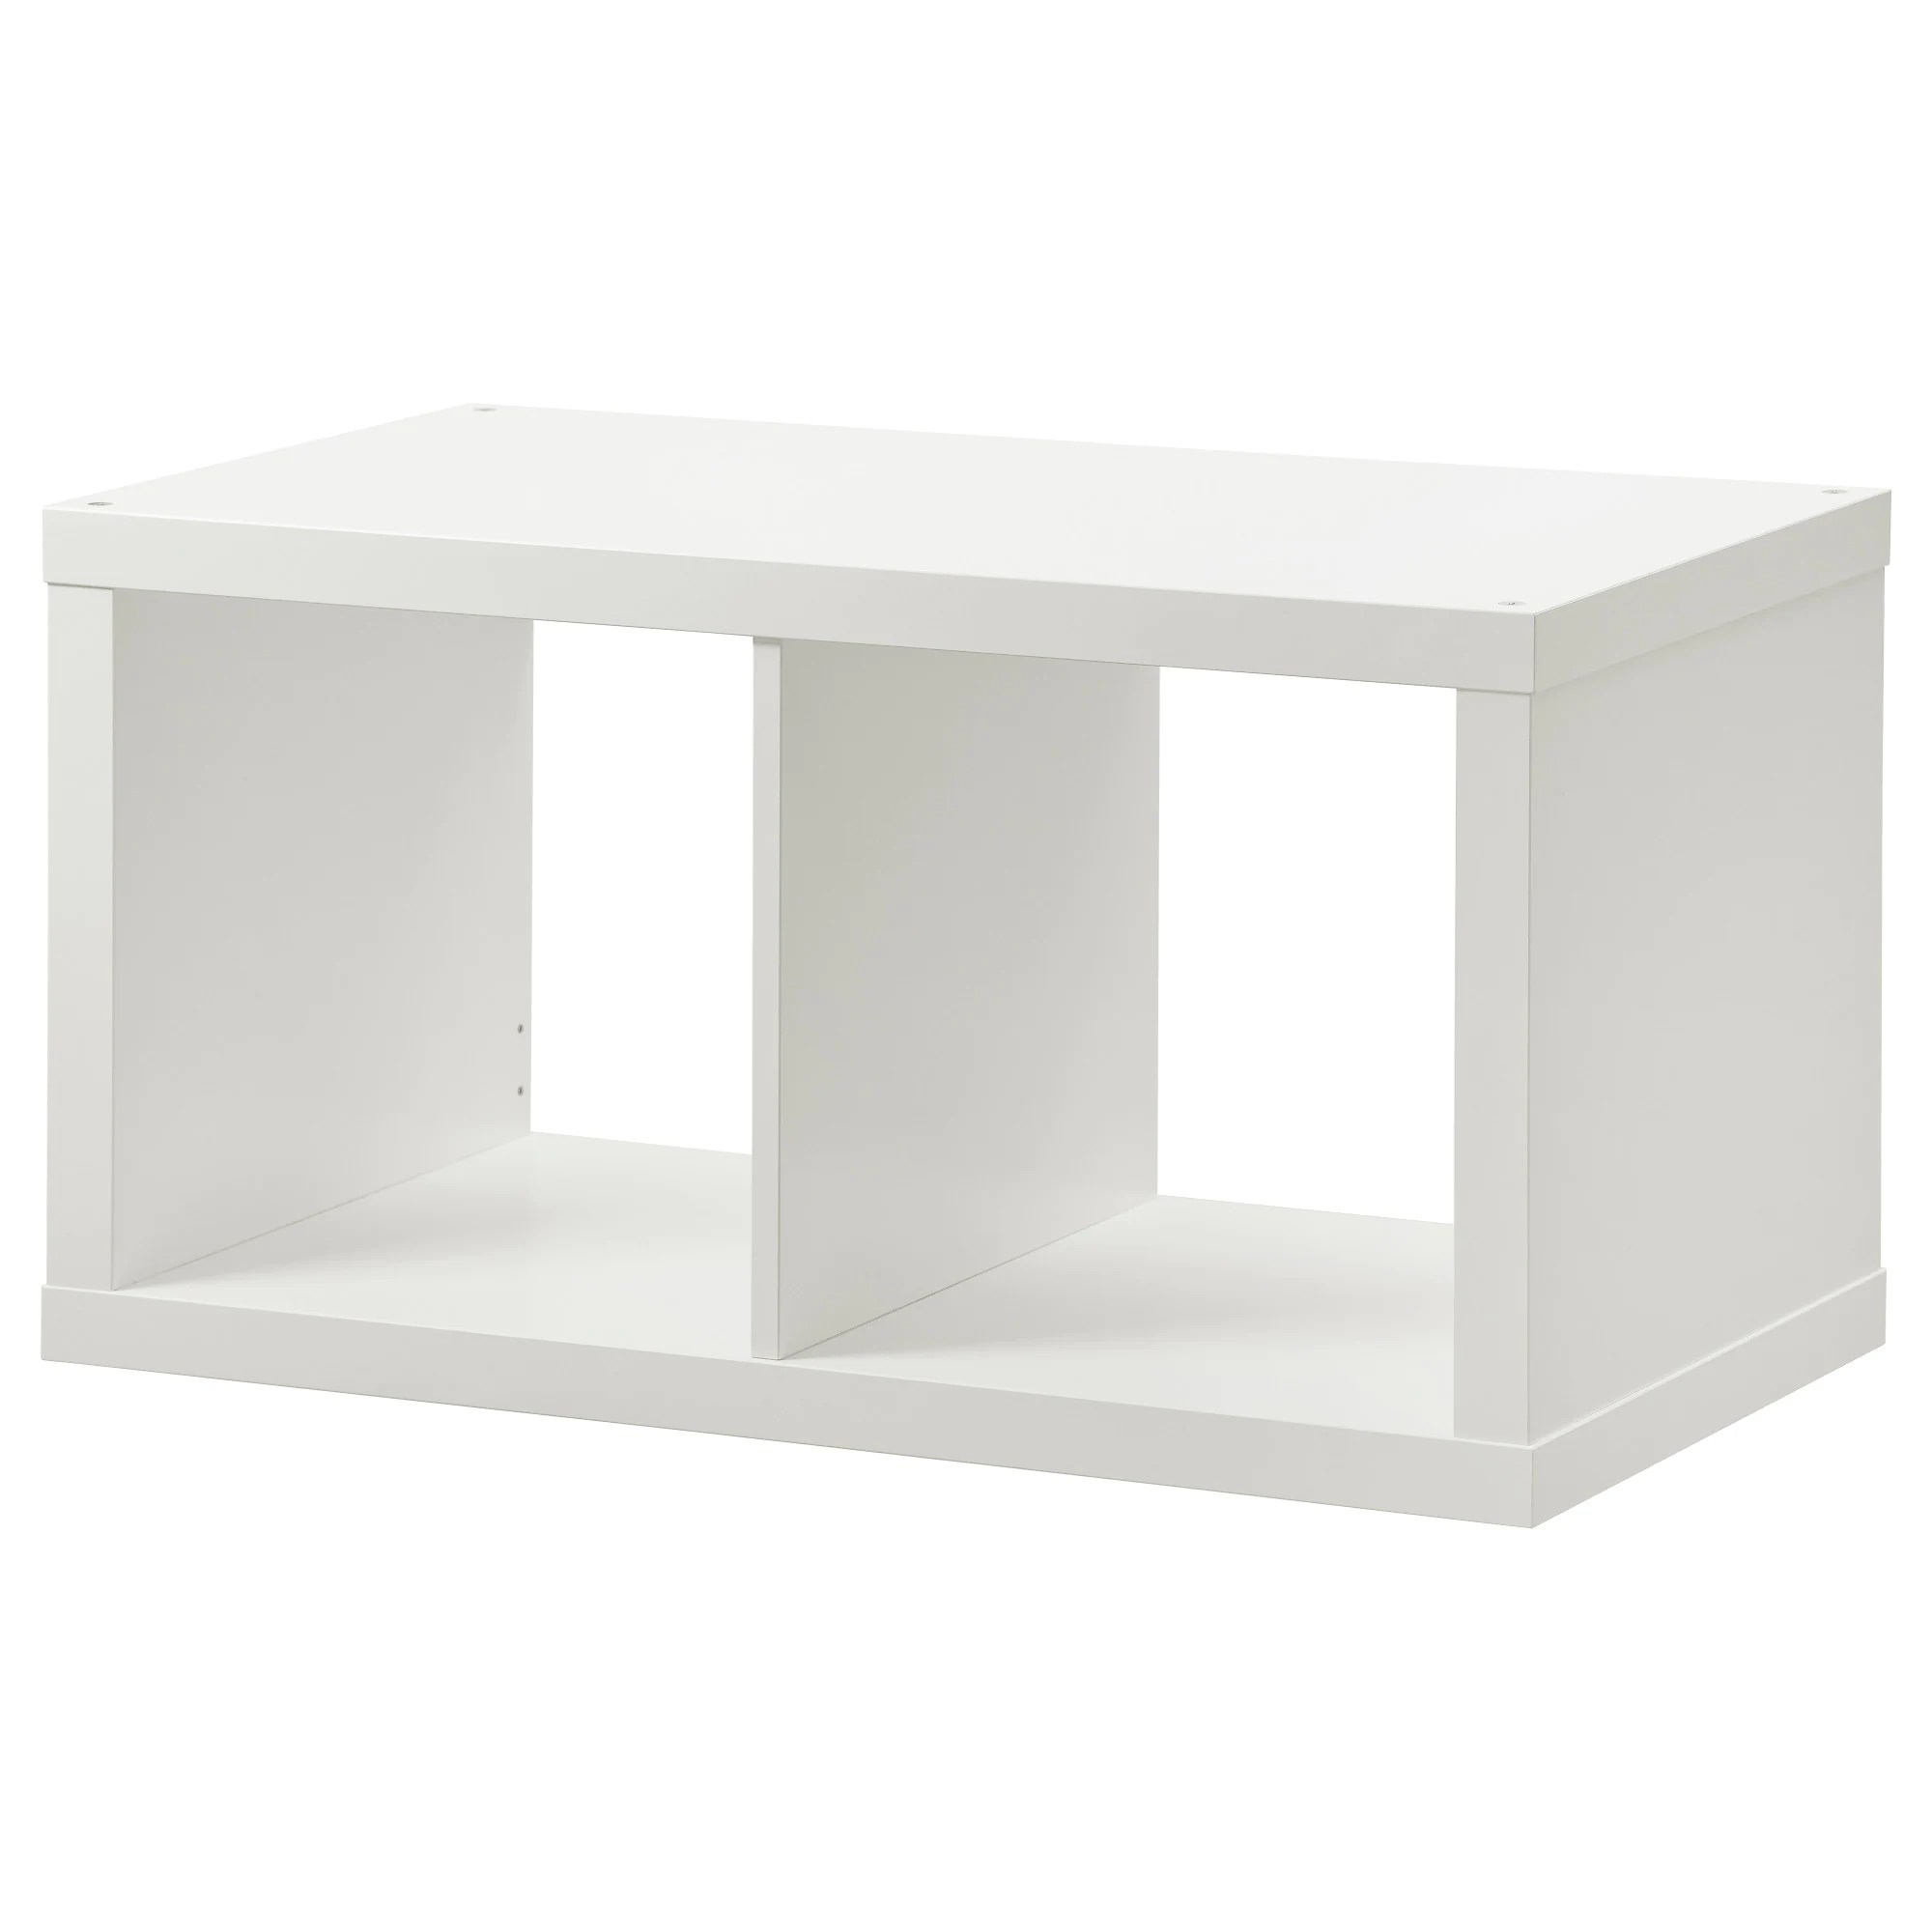 Ikea Wandregal Würfel Regal Kallax Weiß